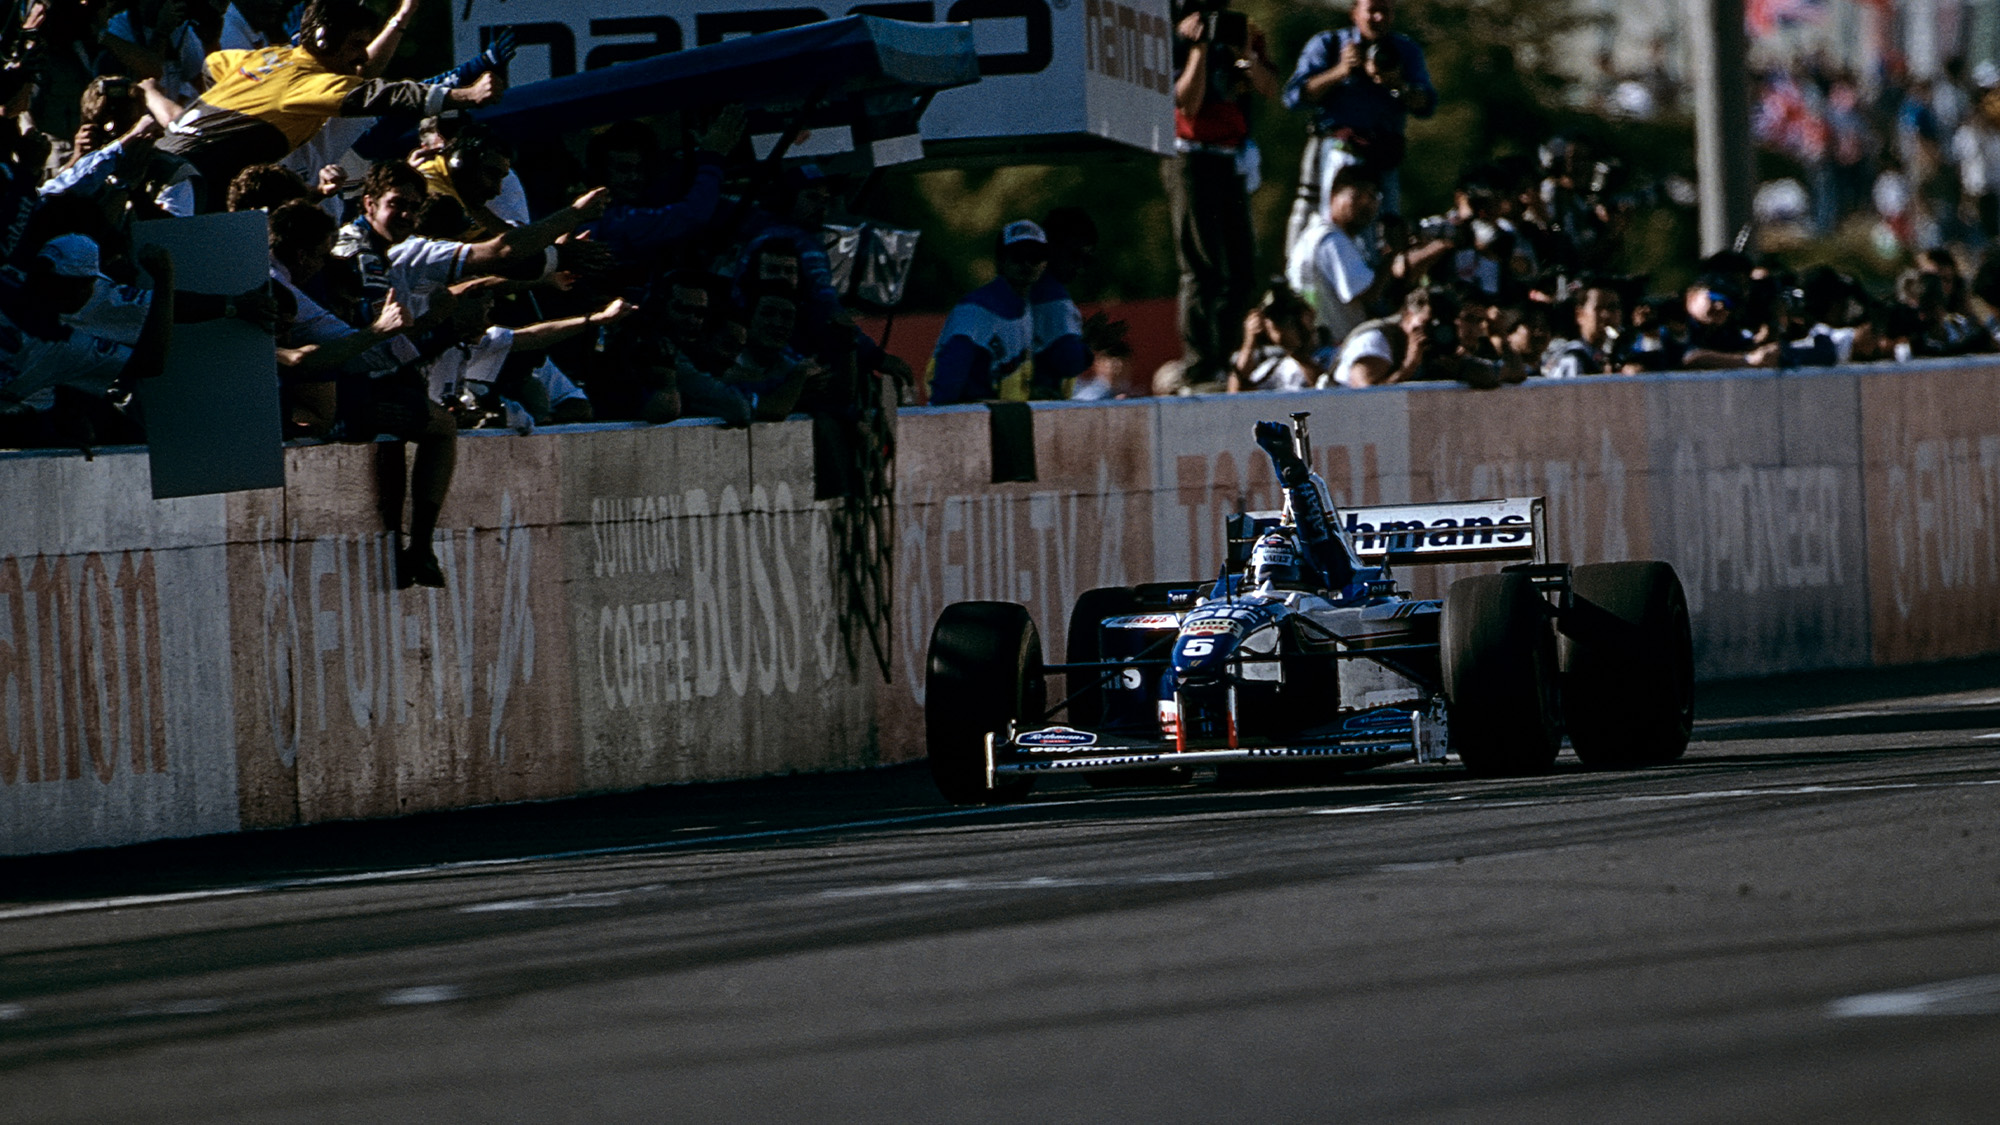 Damon Hill crosses the finish line at the 1996 Japanese Grand Prix at Suzuka to claim the Formula 1 Drivers Wold Championship